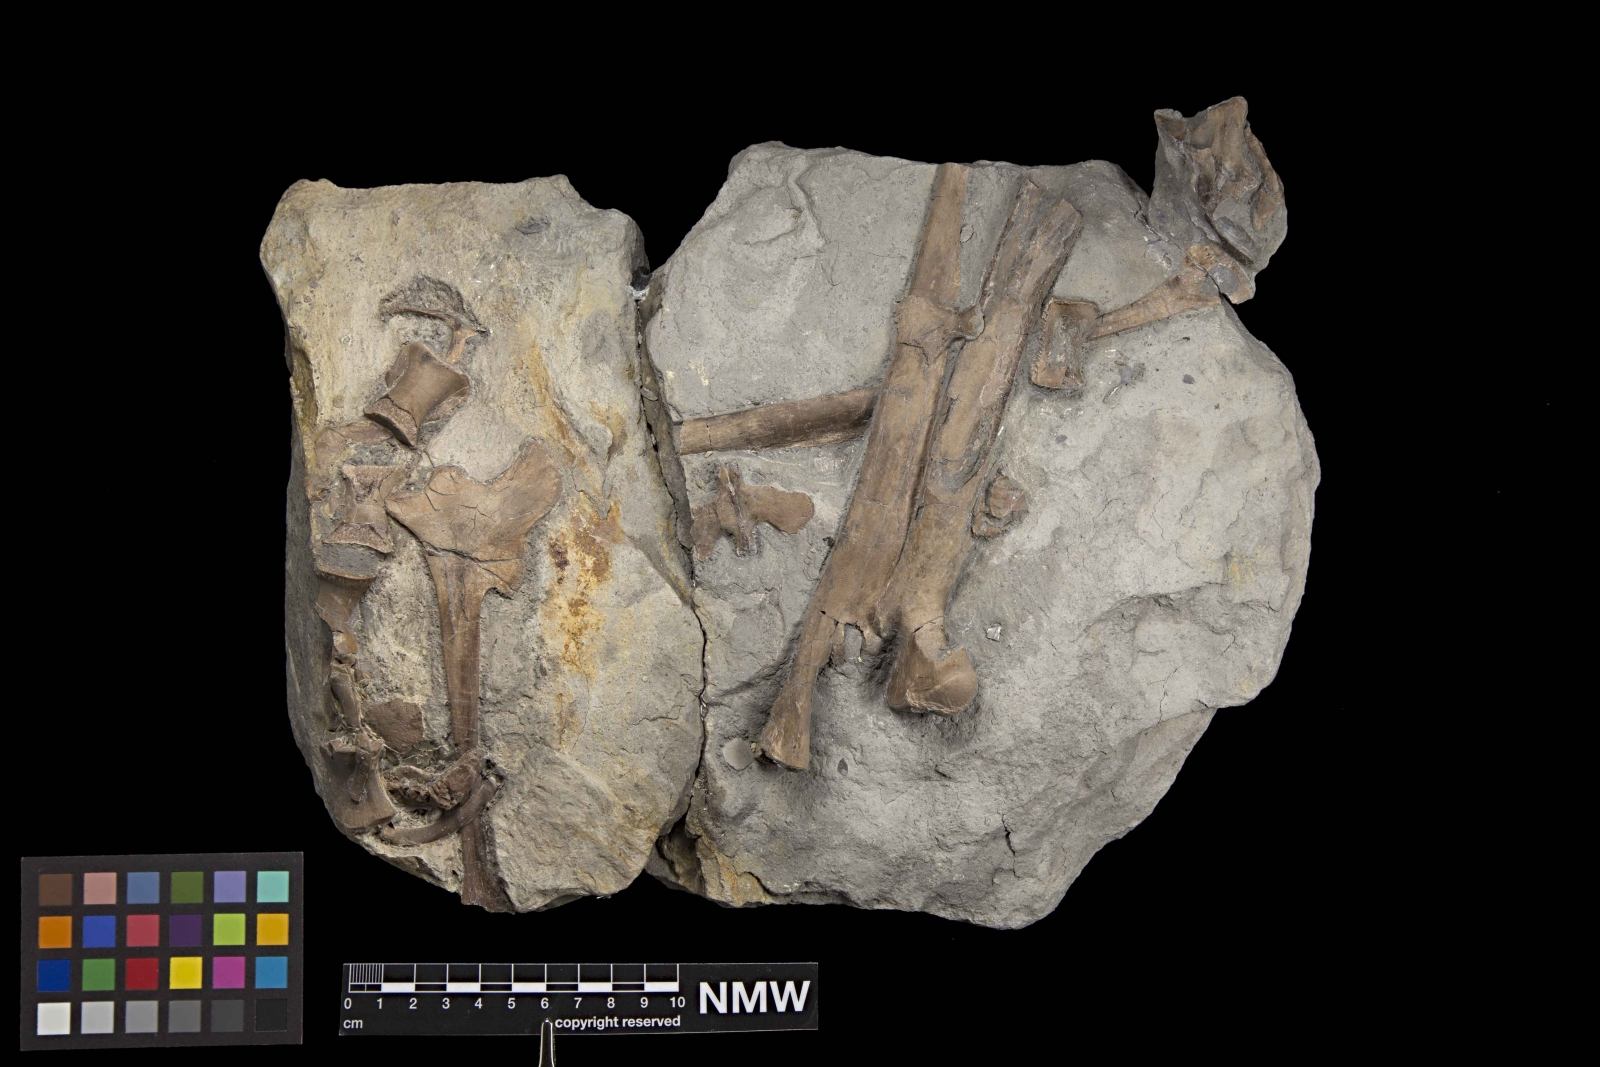 Dinosaur fossils discovered in Wales